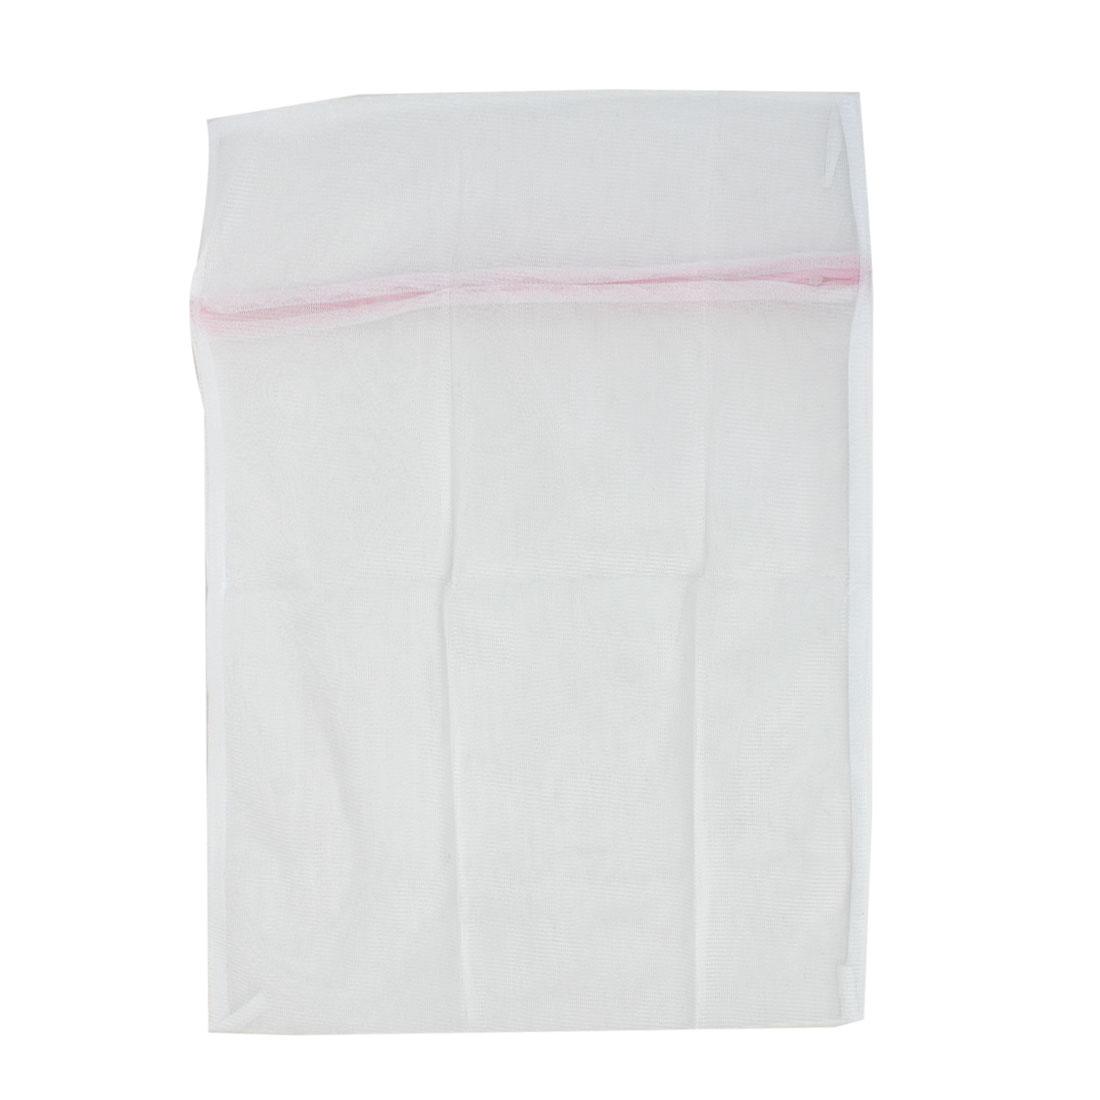 Zip Up White Nylon Mesh Wash Medium Cloths Bras Underwear Laundry Net Washing Bag 40 x 50cm